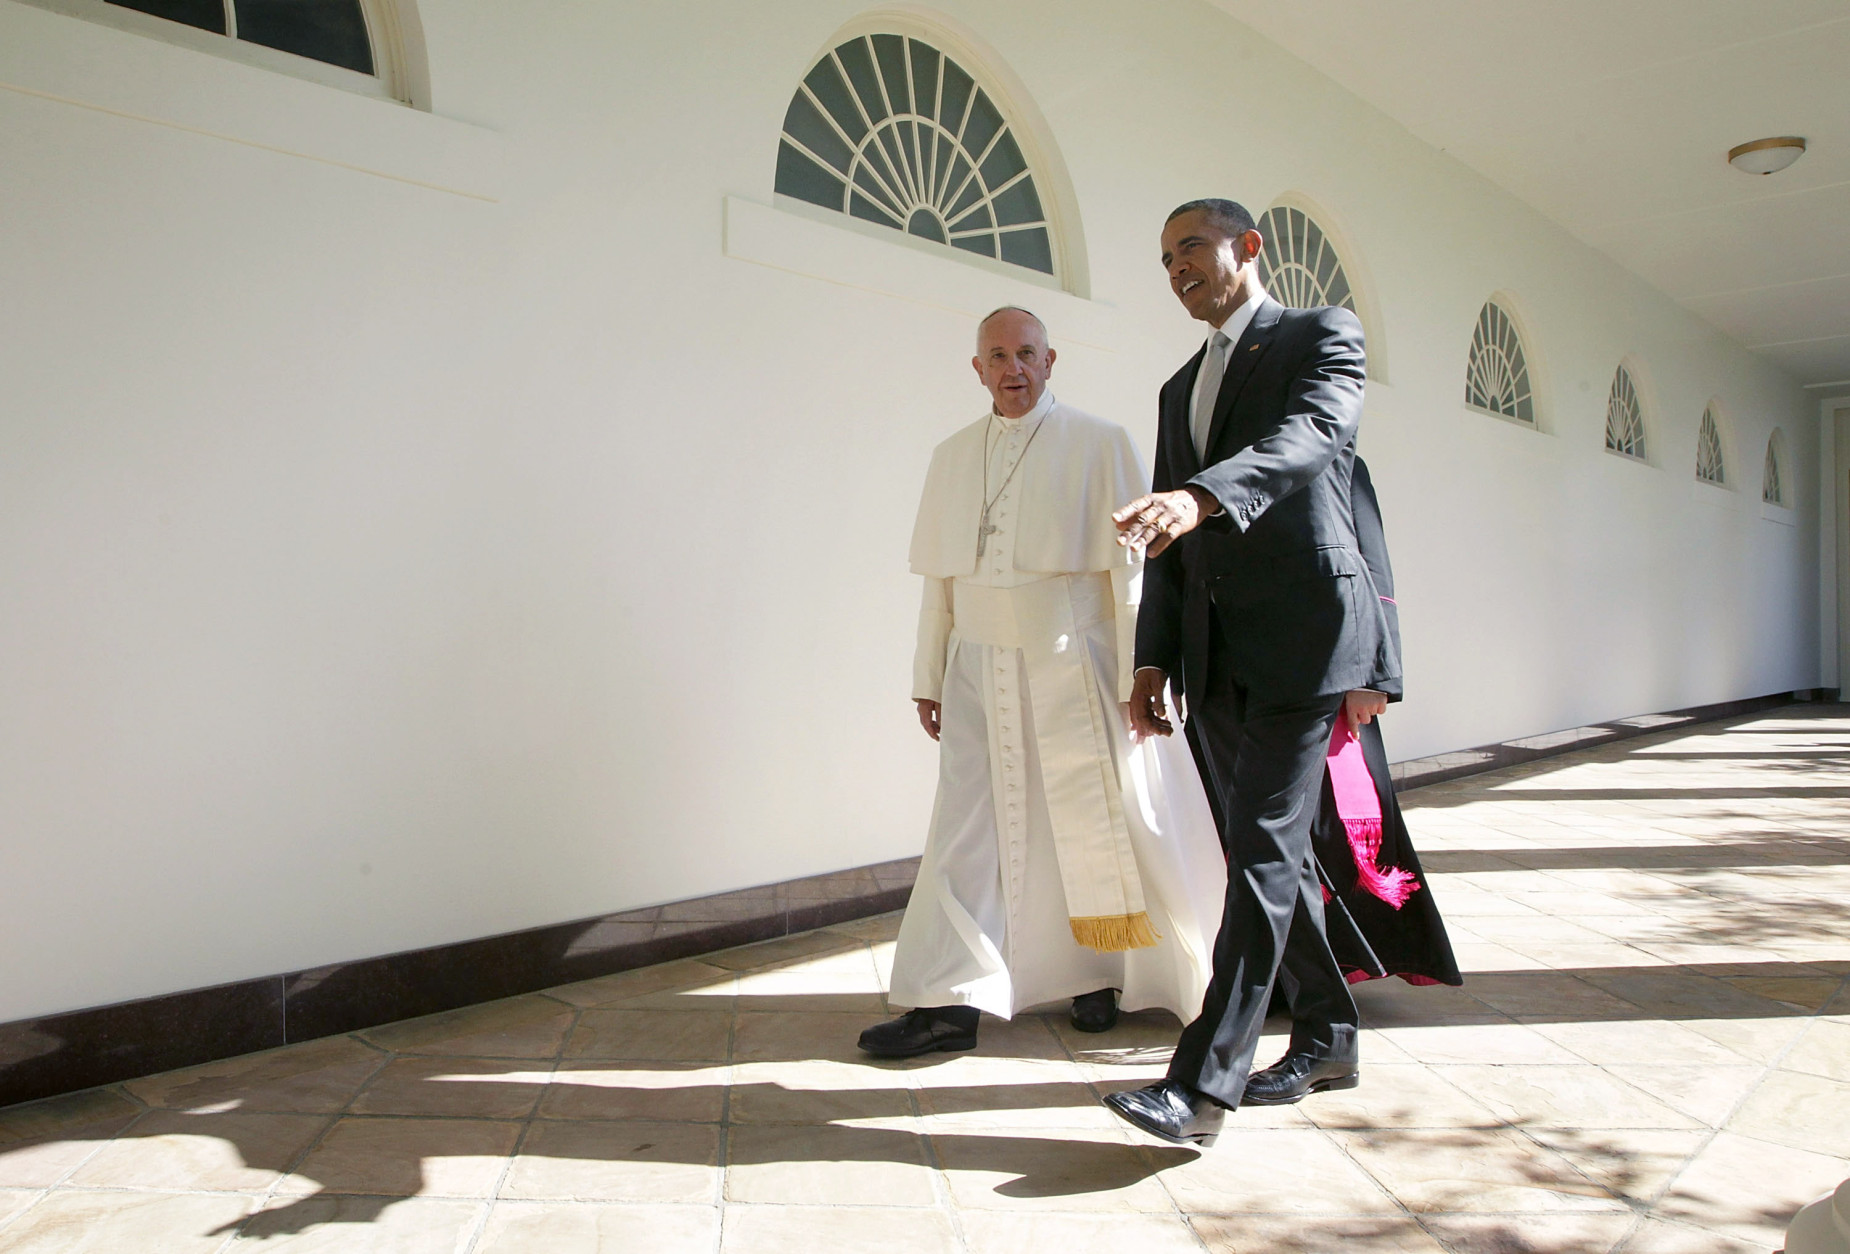 WASHINGTON, DC - SEPTEMBER 23:  U.S. President Barack Obama (R) and Pope Francis (L) walk through the colonnade prior to an Oval Office meeting at the White House on September 23, 2015 in Washington, DC. The Pope begins his first trip to the United States at the White House followed by a visit to St. Matthew's Cathedral, and will then hold a Mass on the grounds of the Basilica of the National Shrine of the Immaculate Conception.  (Photo by Alex Wong/Getty Images)